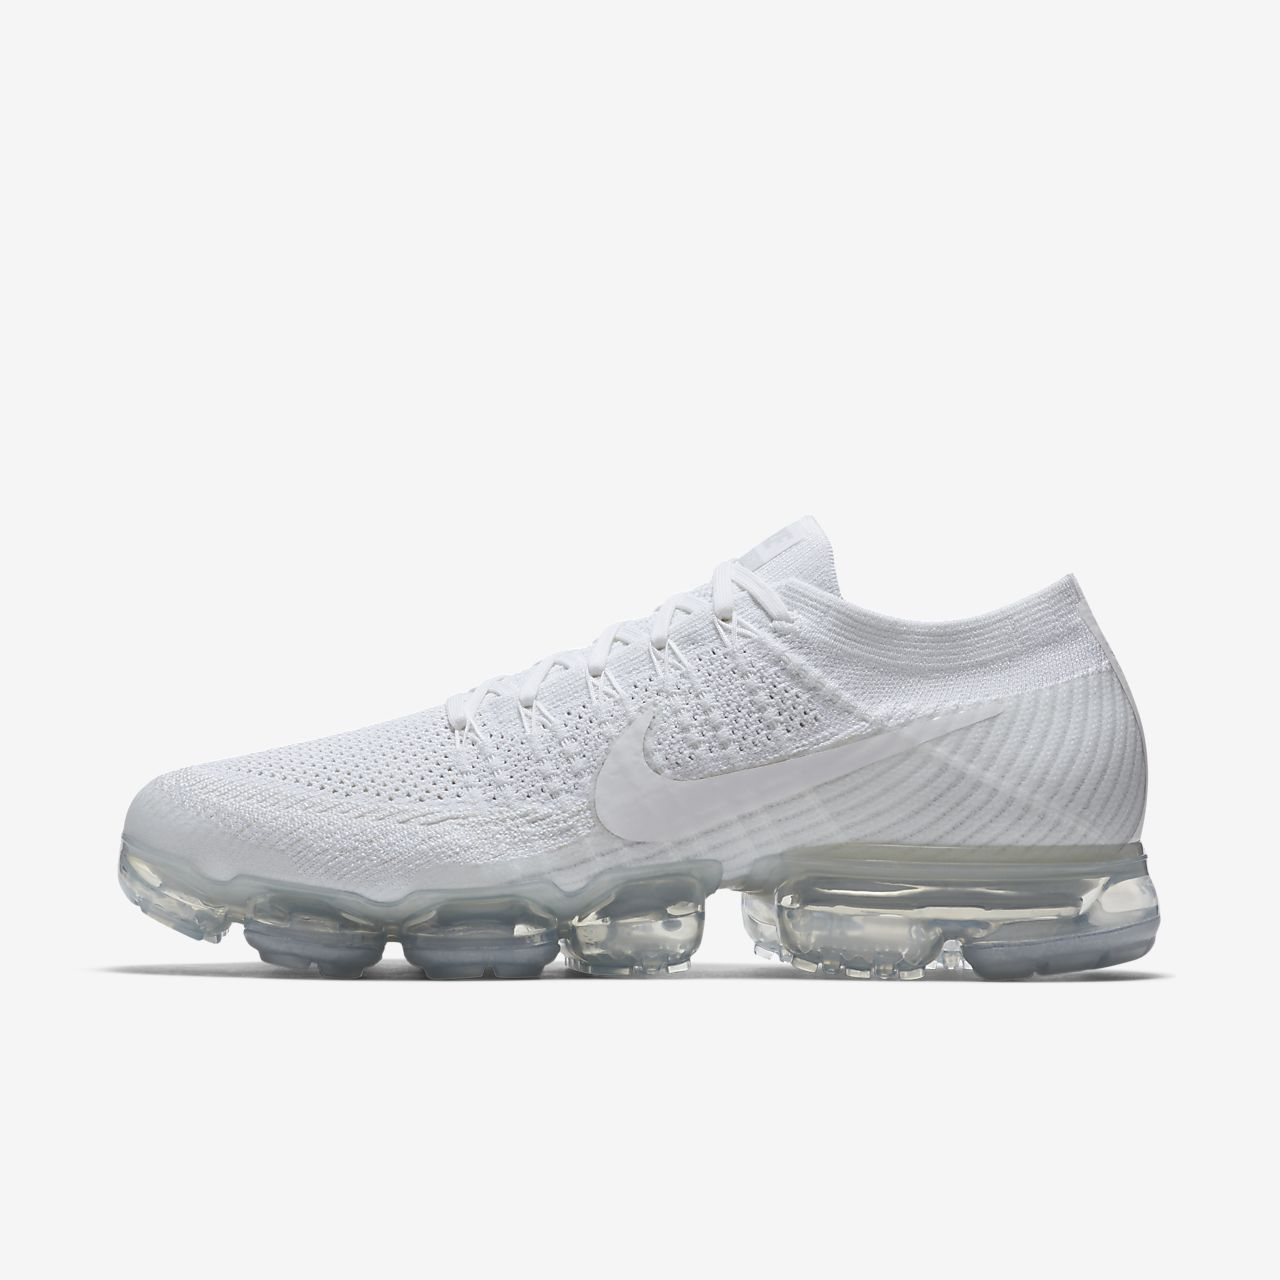 Nike Air Vapormax CDG White